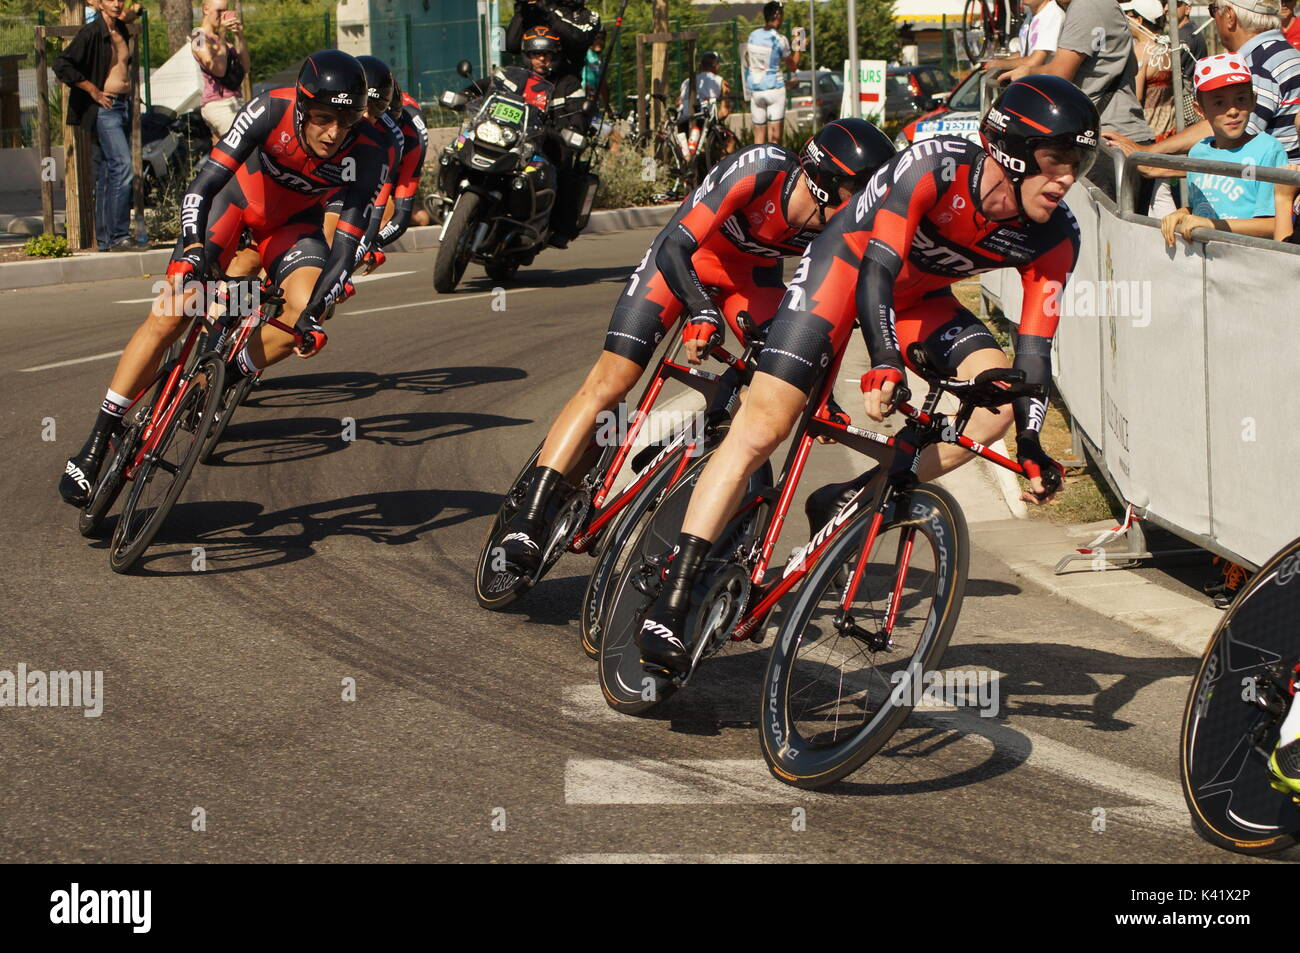 NICE - JULY 2ND : The TOUR 2013  (Tour de France) .BMC Racing Team during Nice/Nice Stage 4 (25 km). - Stock Image